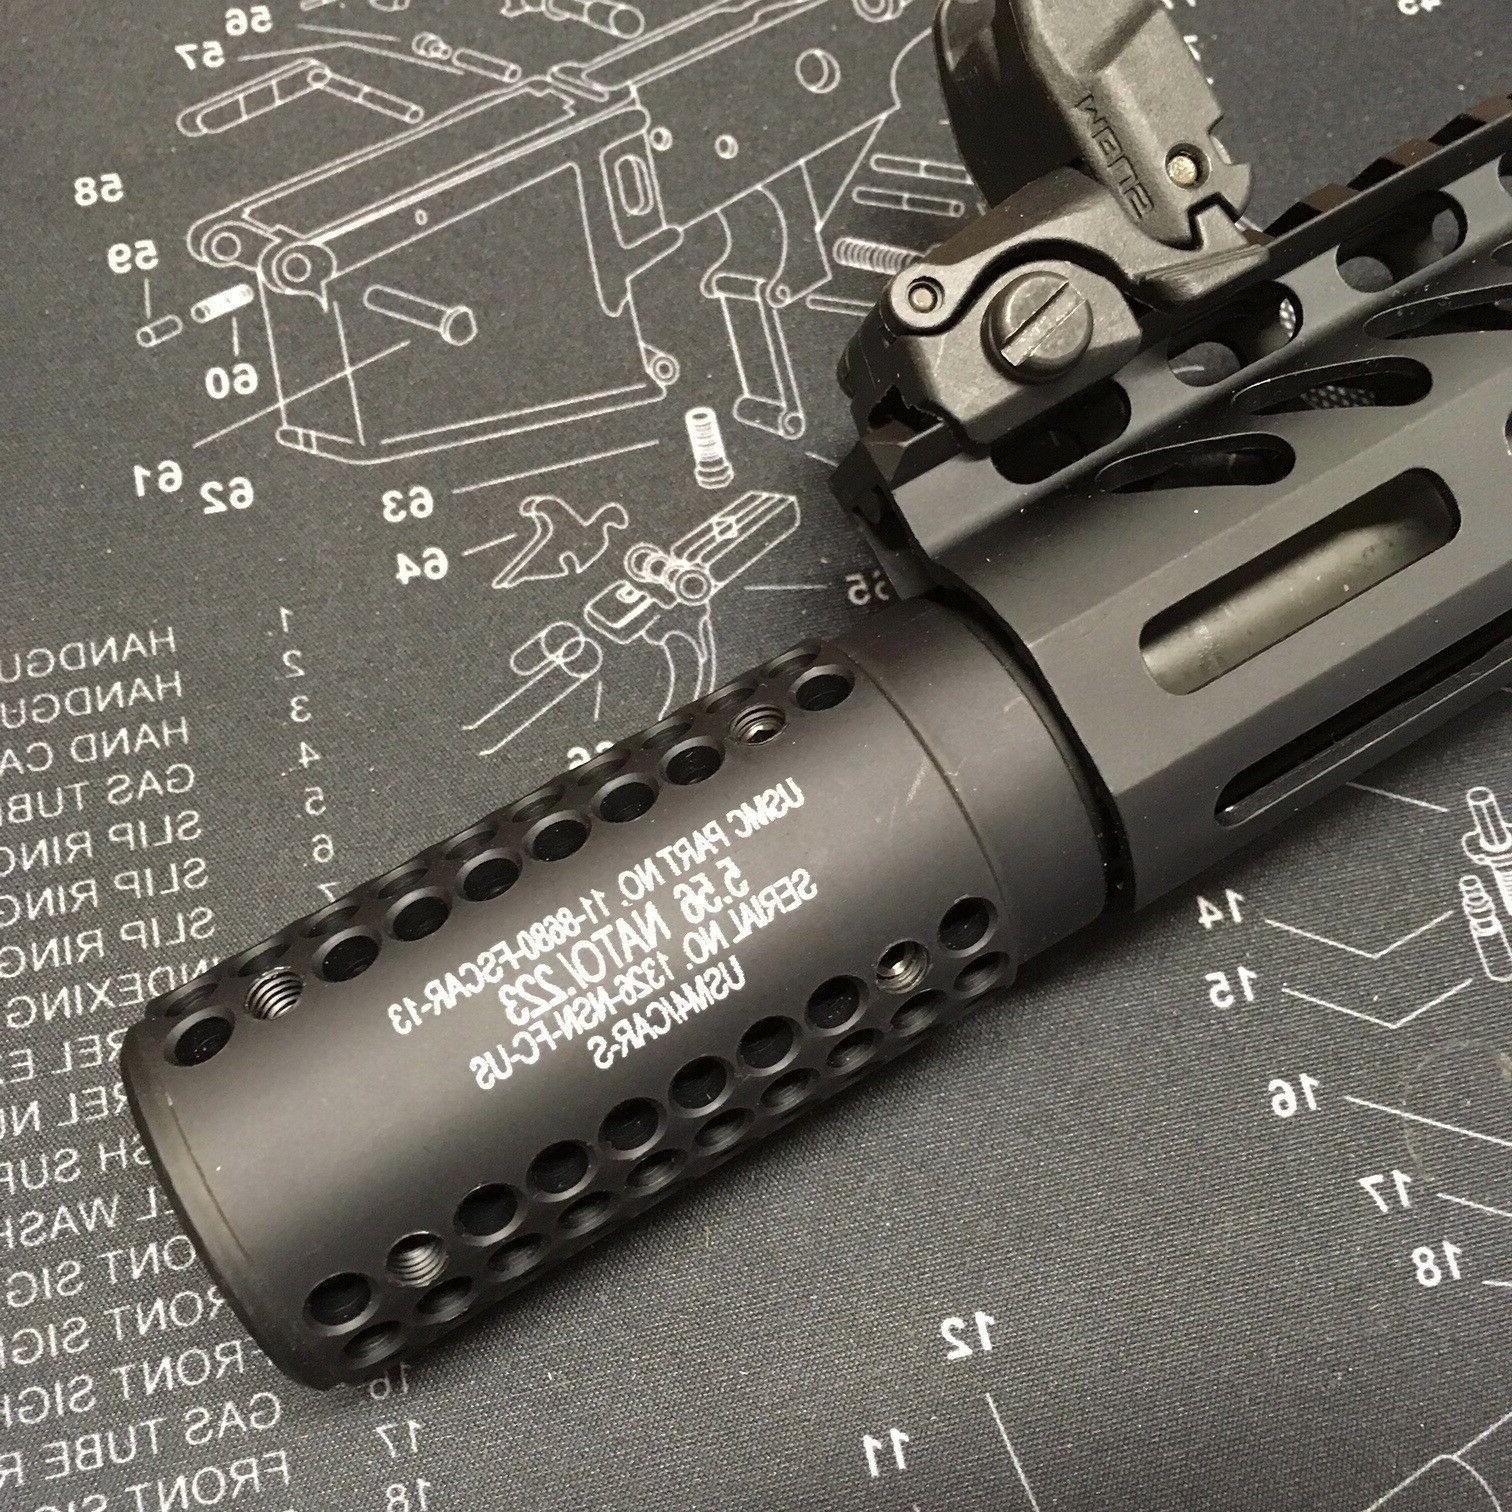 mini socom slip over barrel shroud muzzle